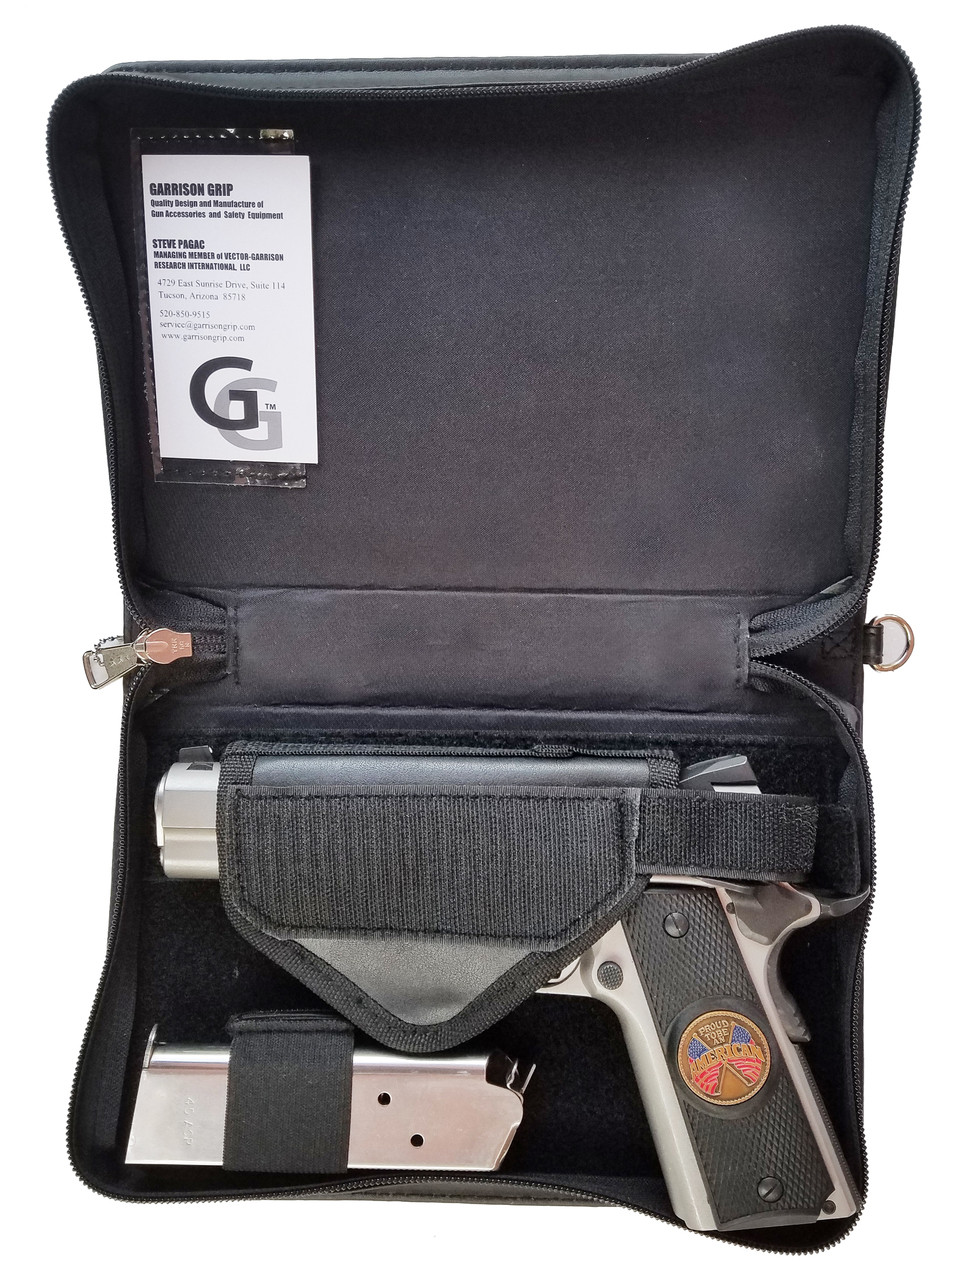 Garrison Grip CCW Leather Good Book Style Gun Case for Carry or Storage with Silver Leaf Letters for Large to Small Guns (BLK)